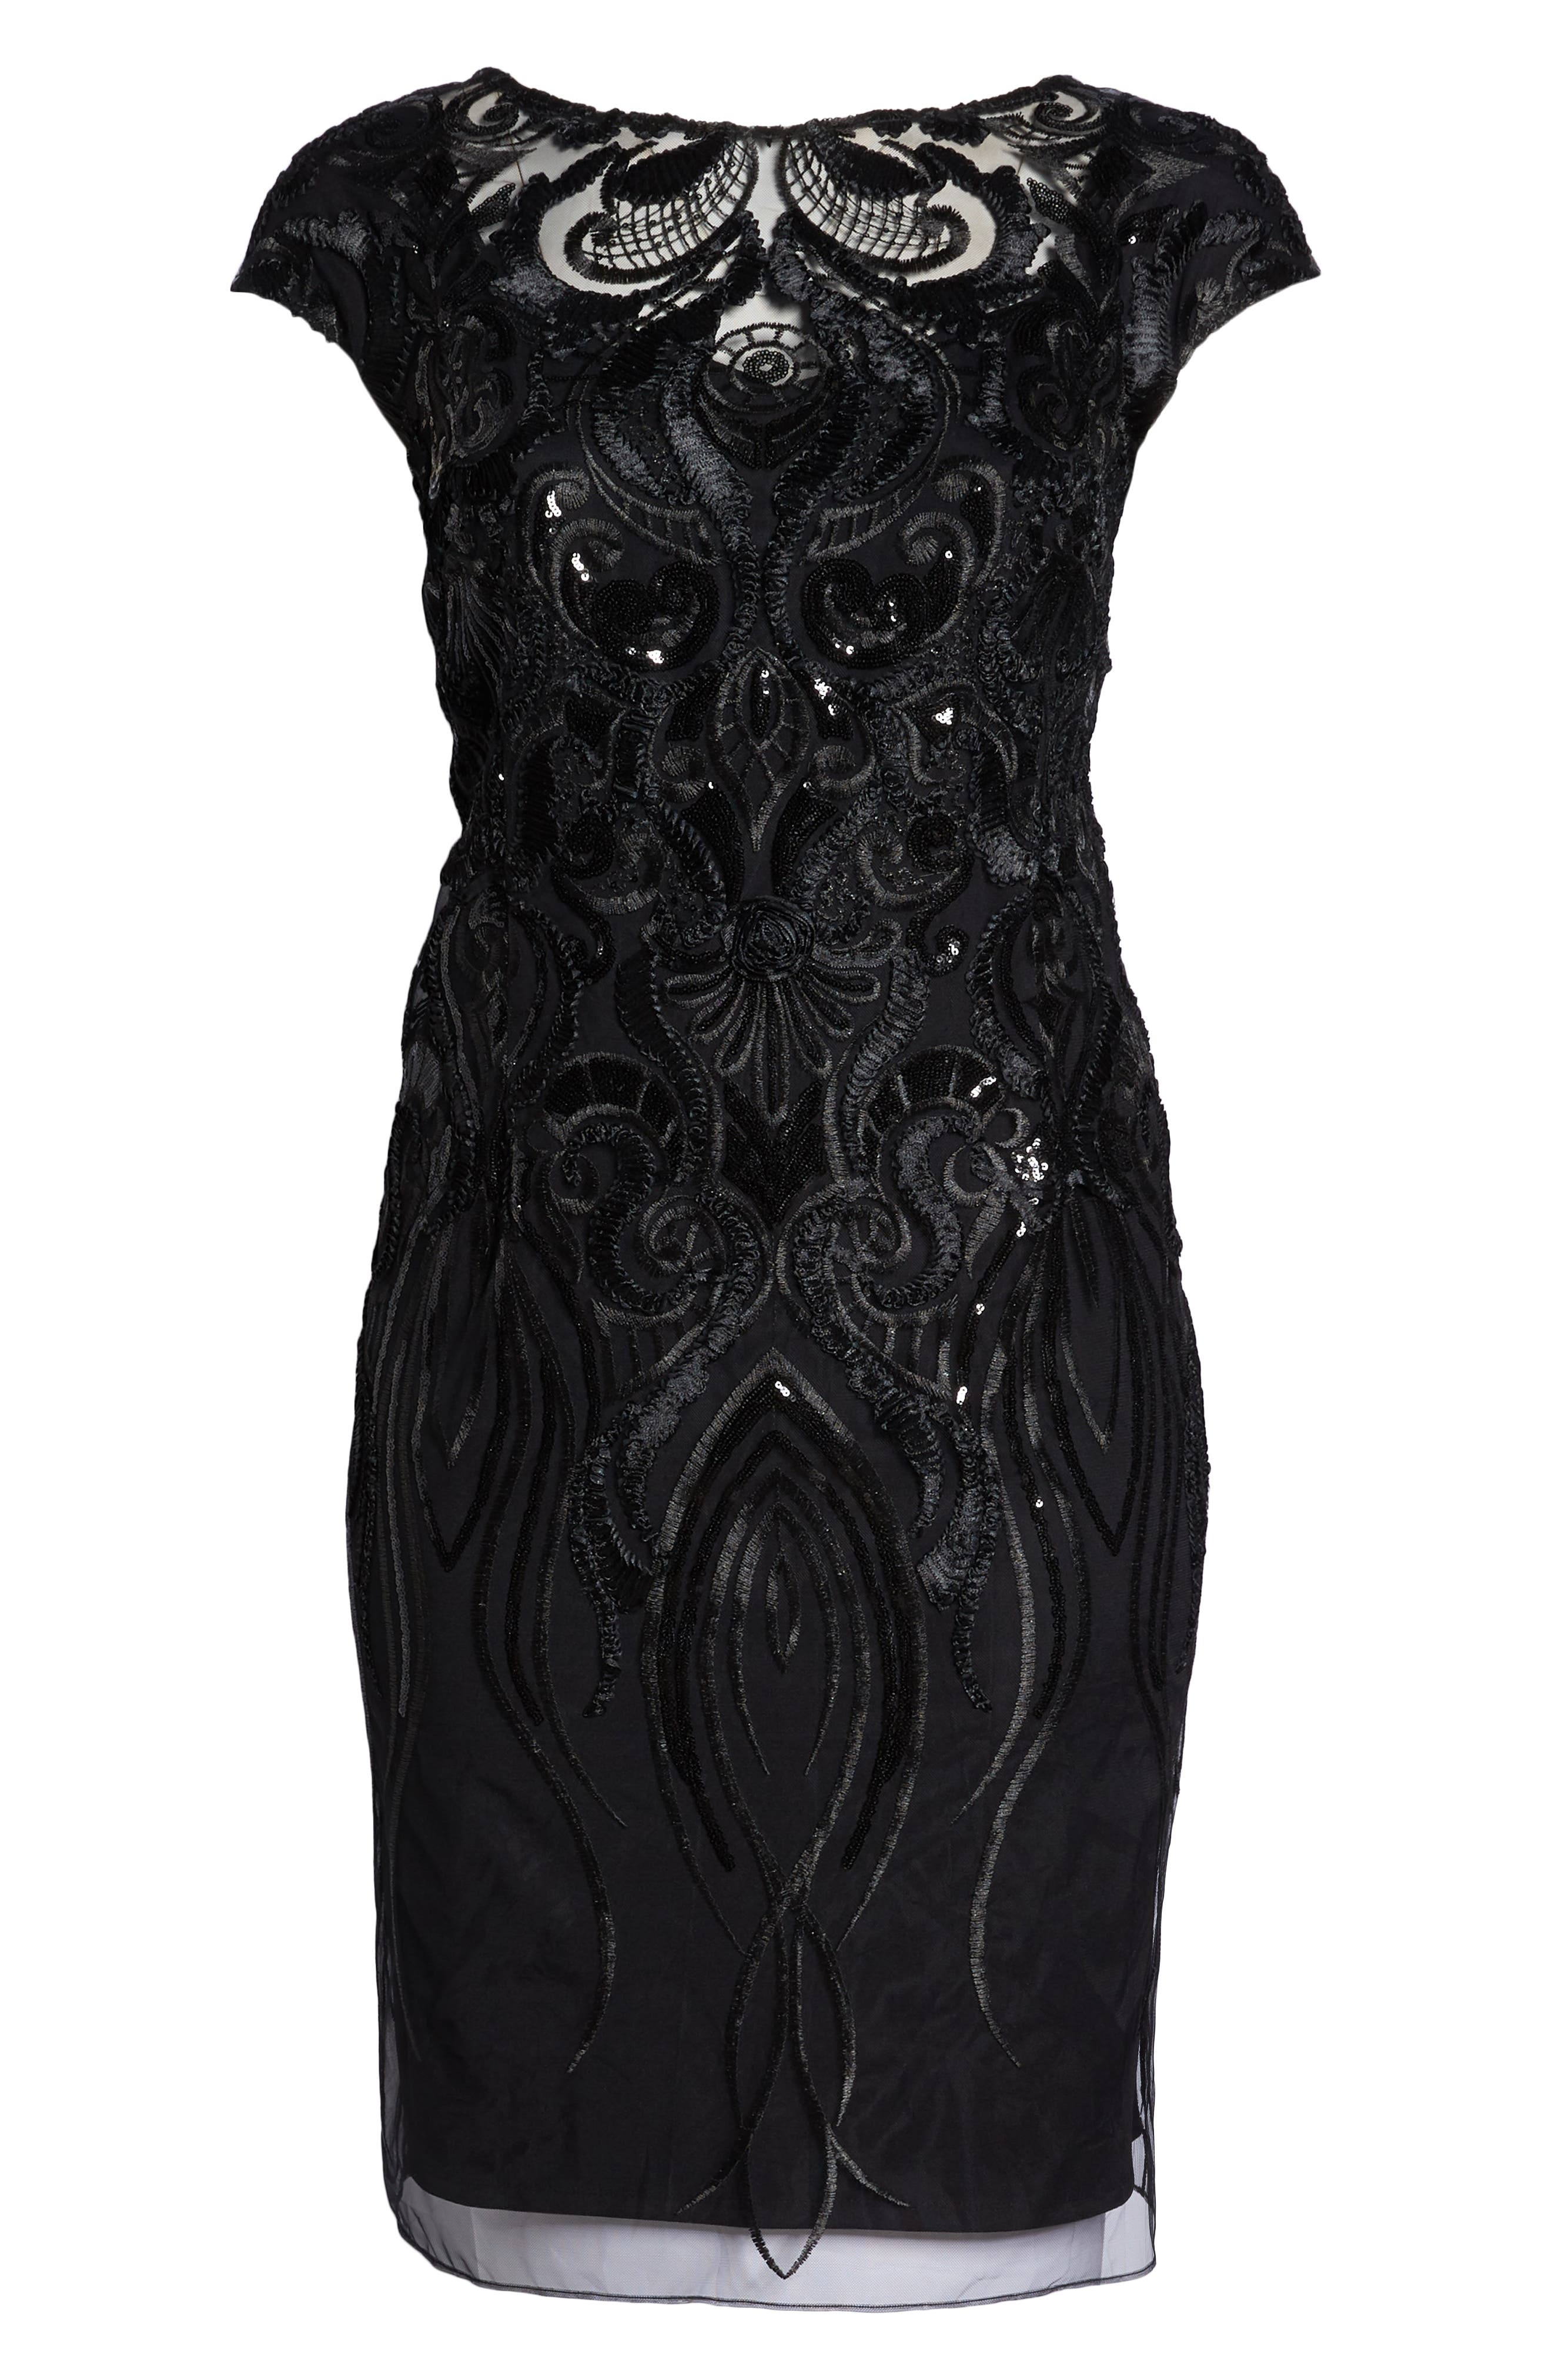 Sequin Embroidered Sheath Dress,                             Alternate thumbnail 7, color,                             001